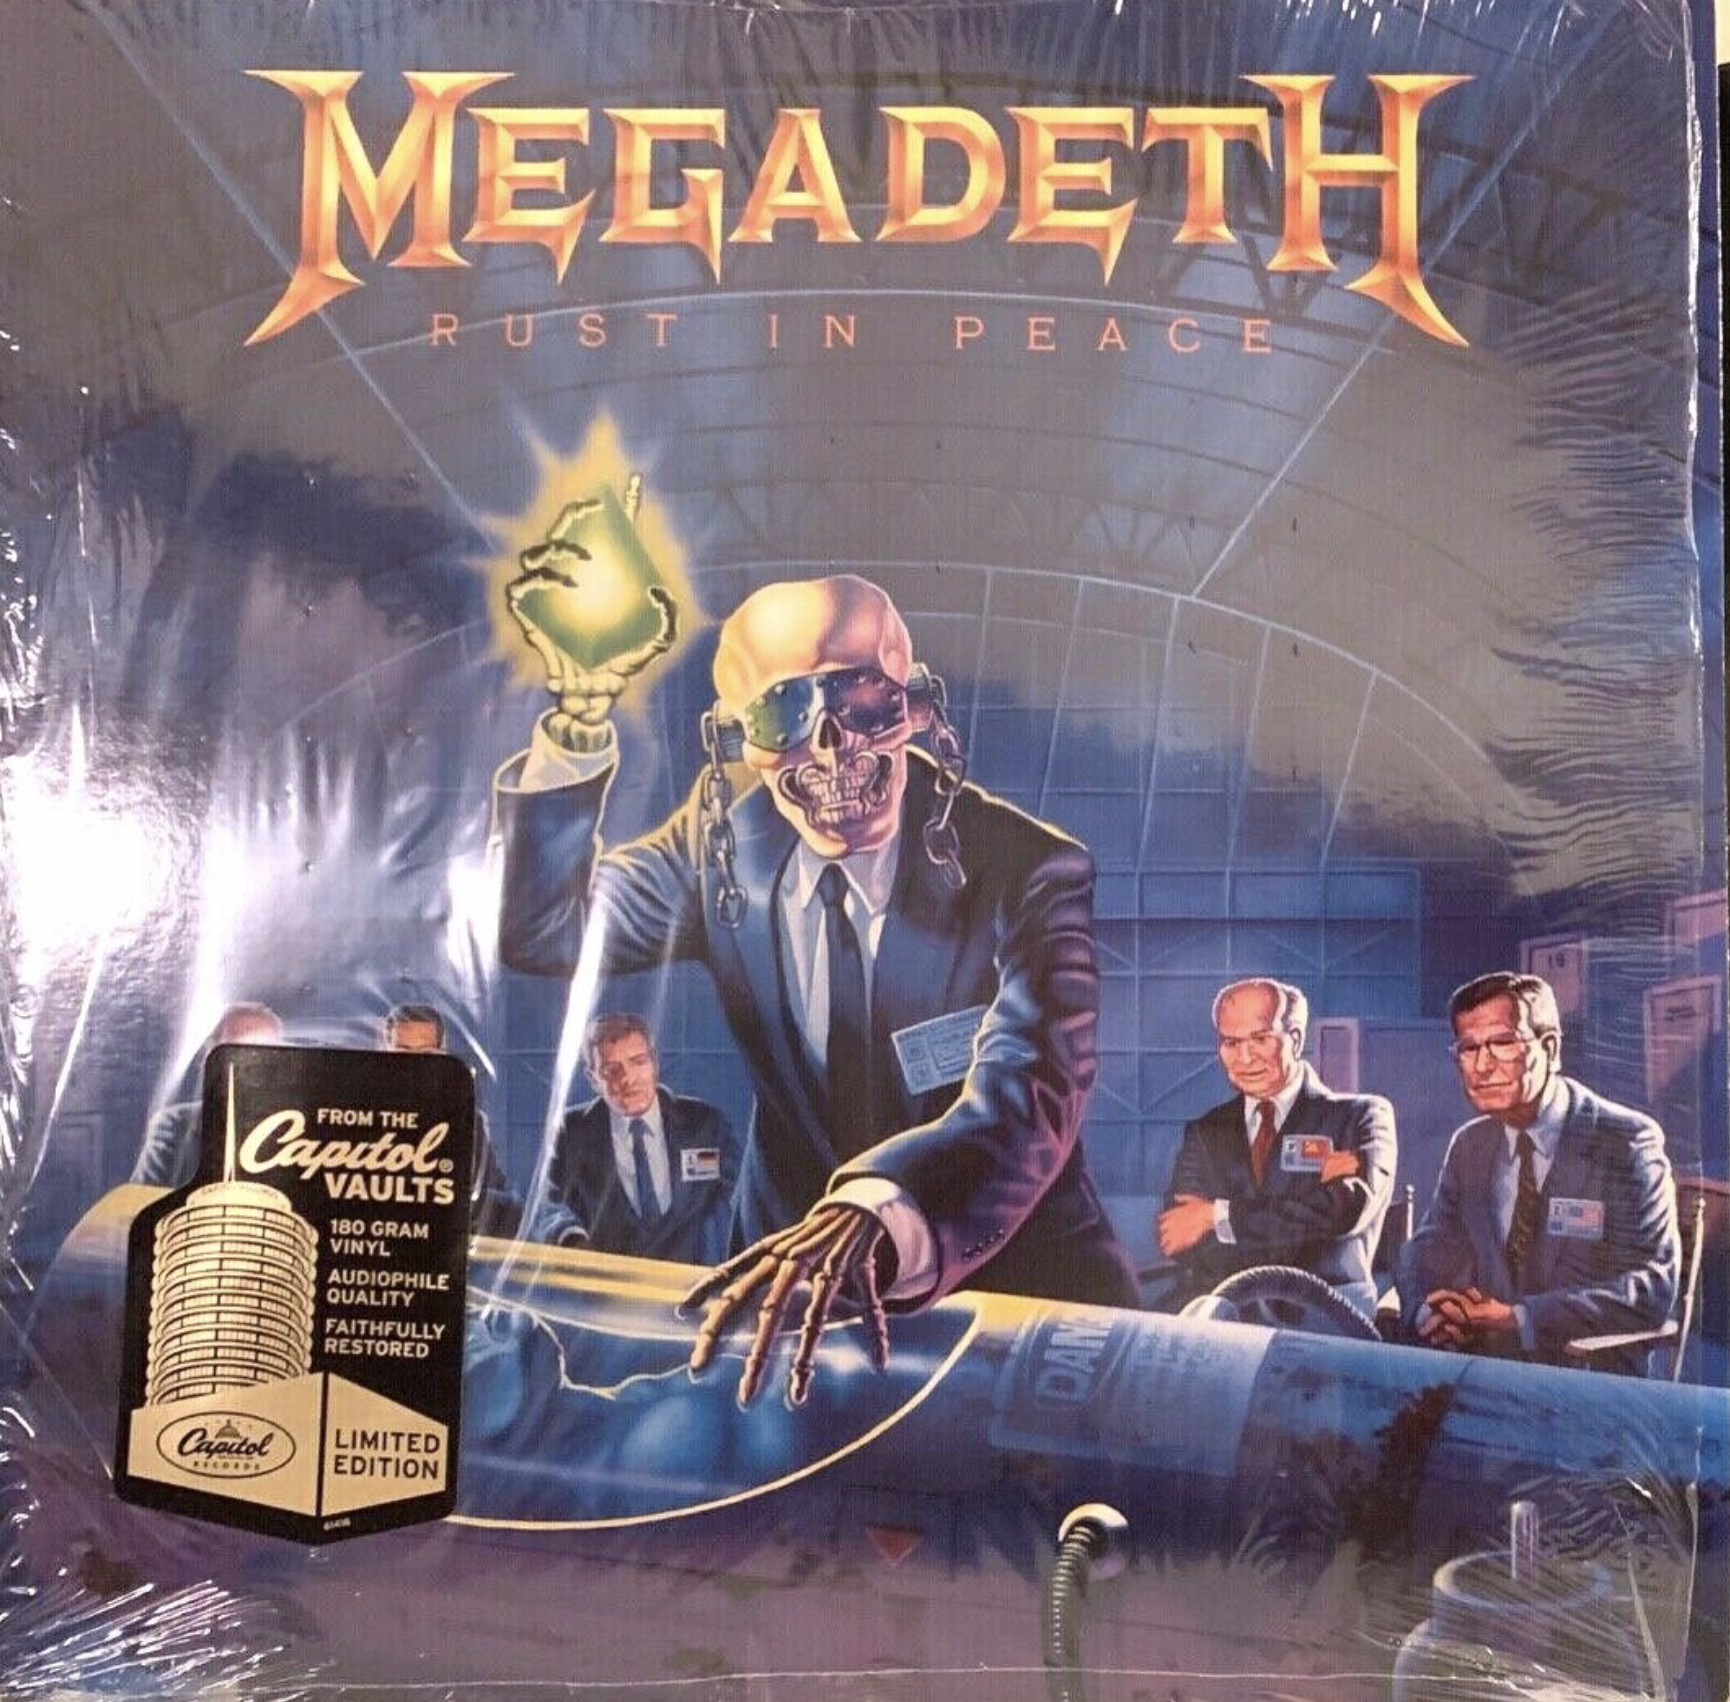 Megadeth rust in peace album